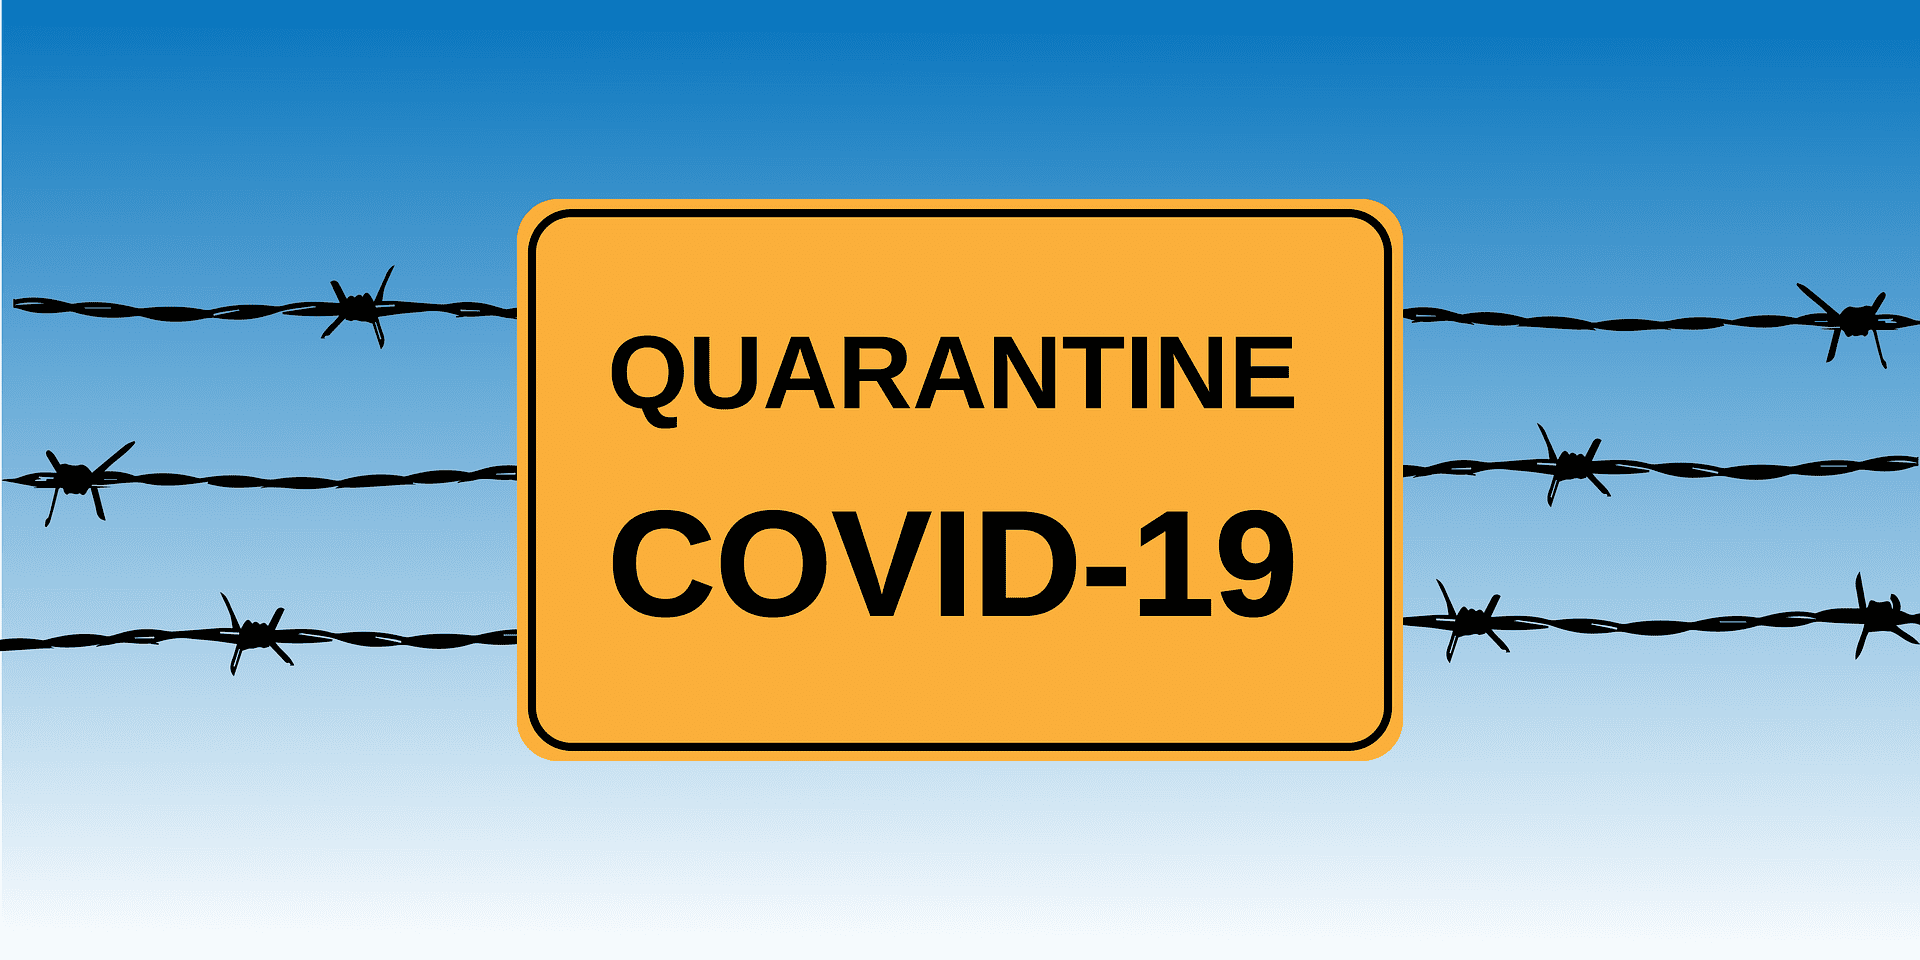 Coronavirus quarantine sign | Photo: Pixabay/Alexey_Hulsov